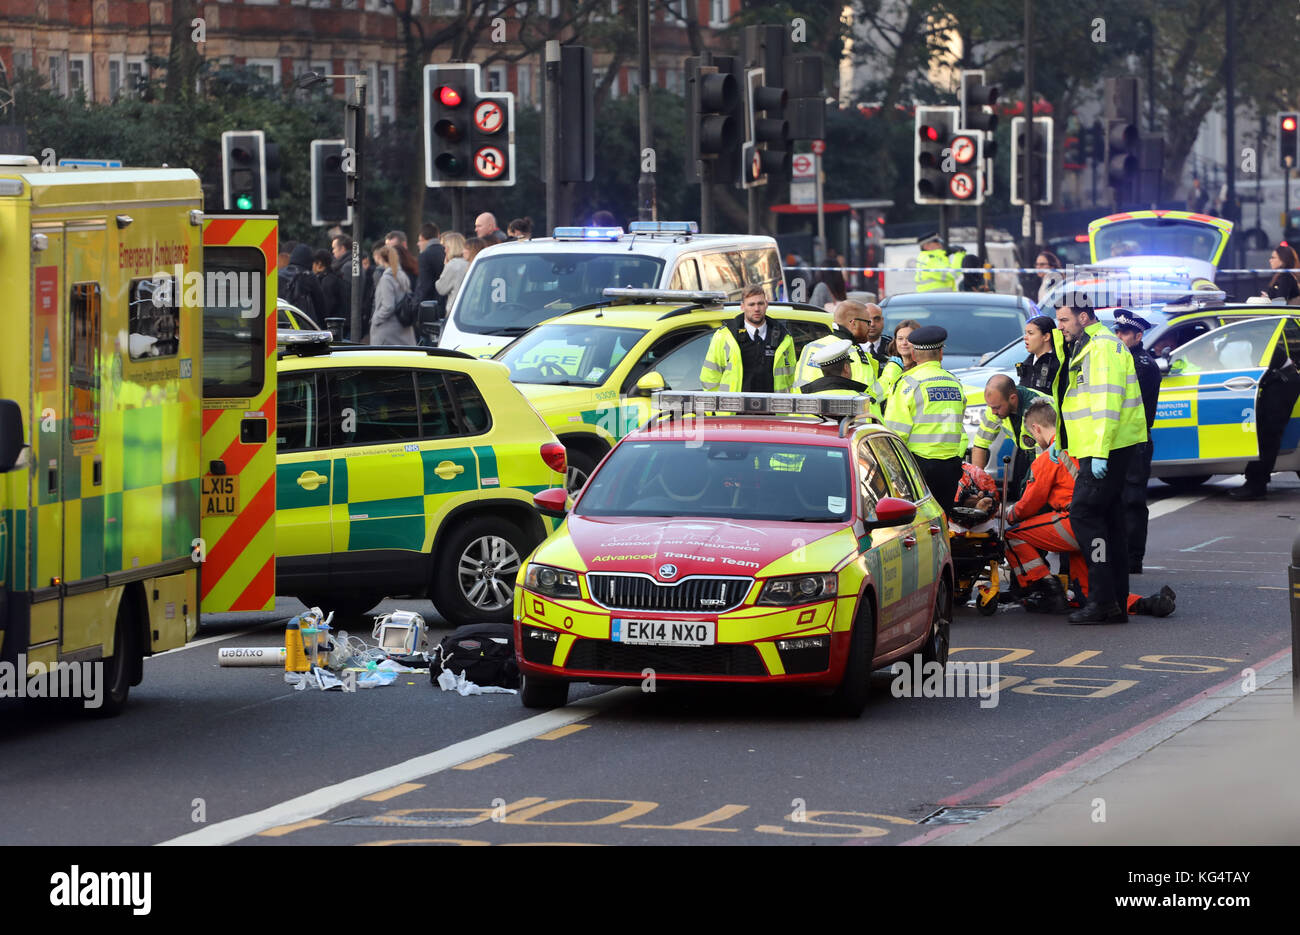 Road Traffic Accident Central London Motorcyclist injured and being treated by medics - Stock Image